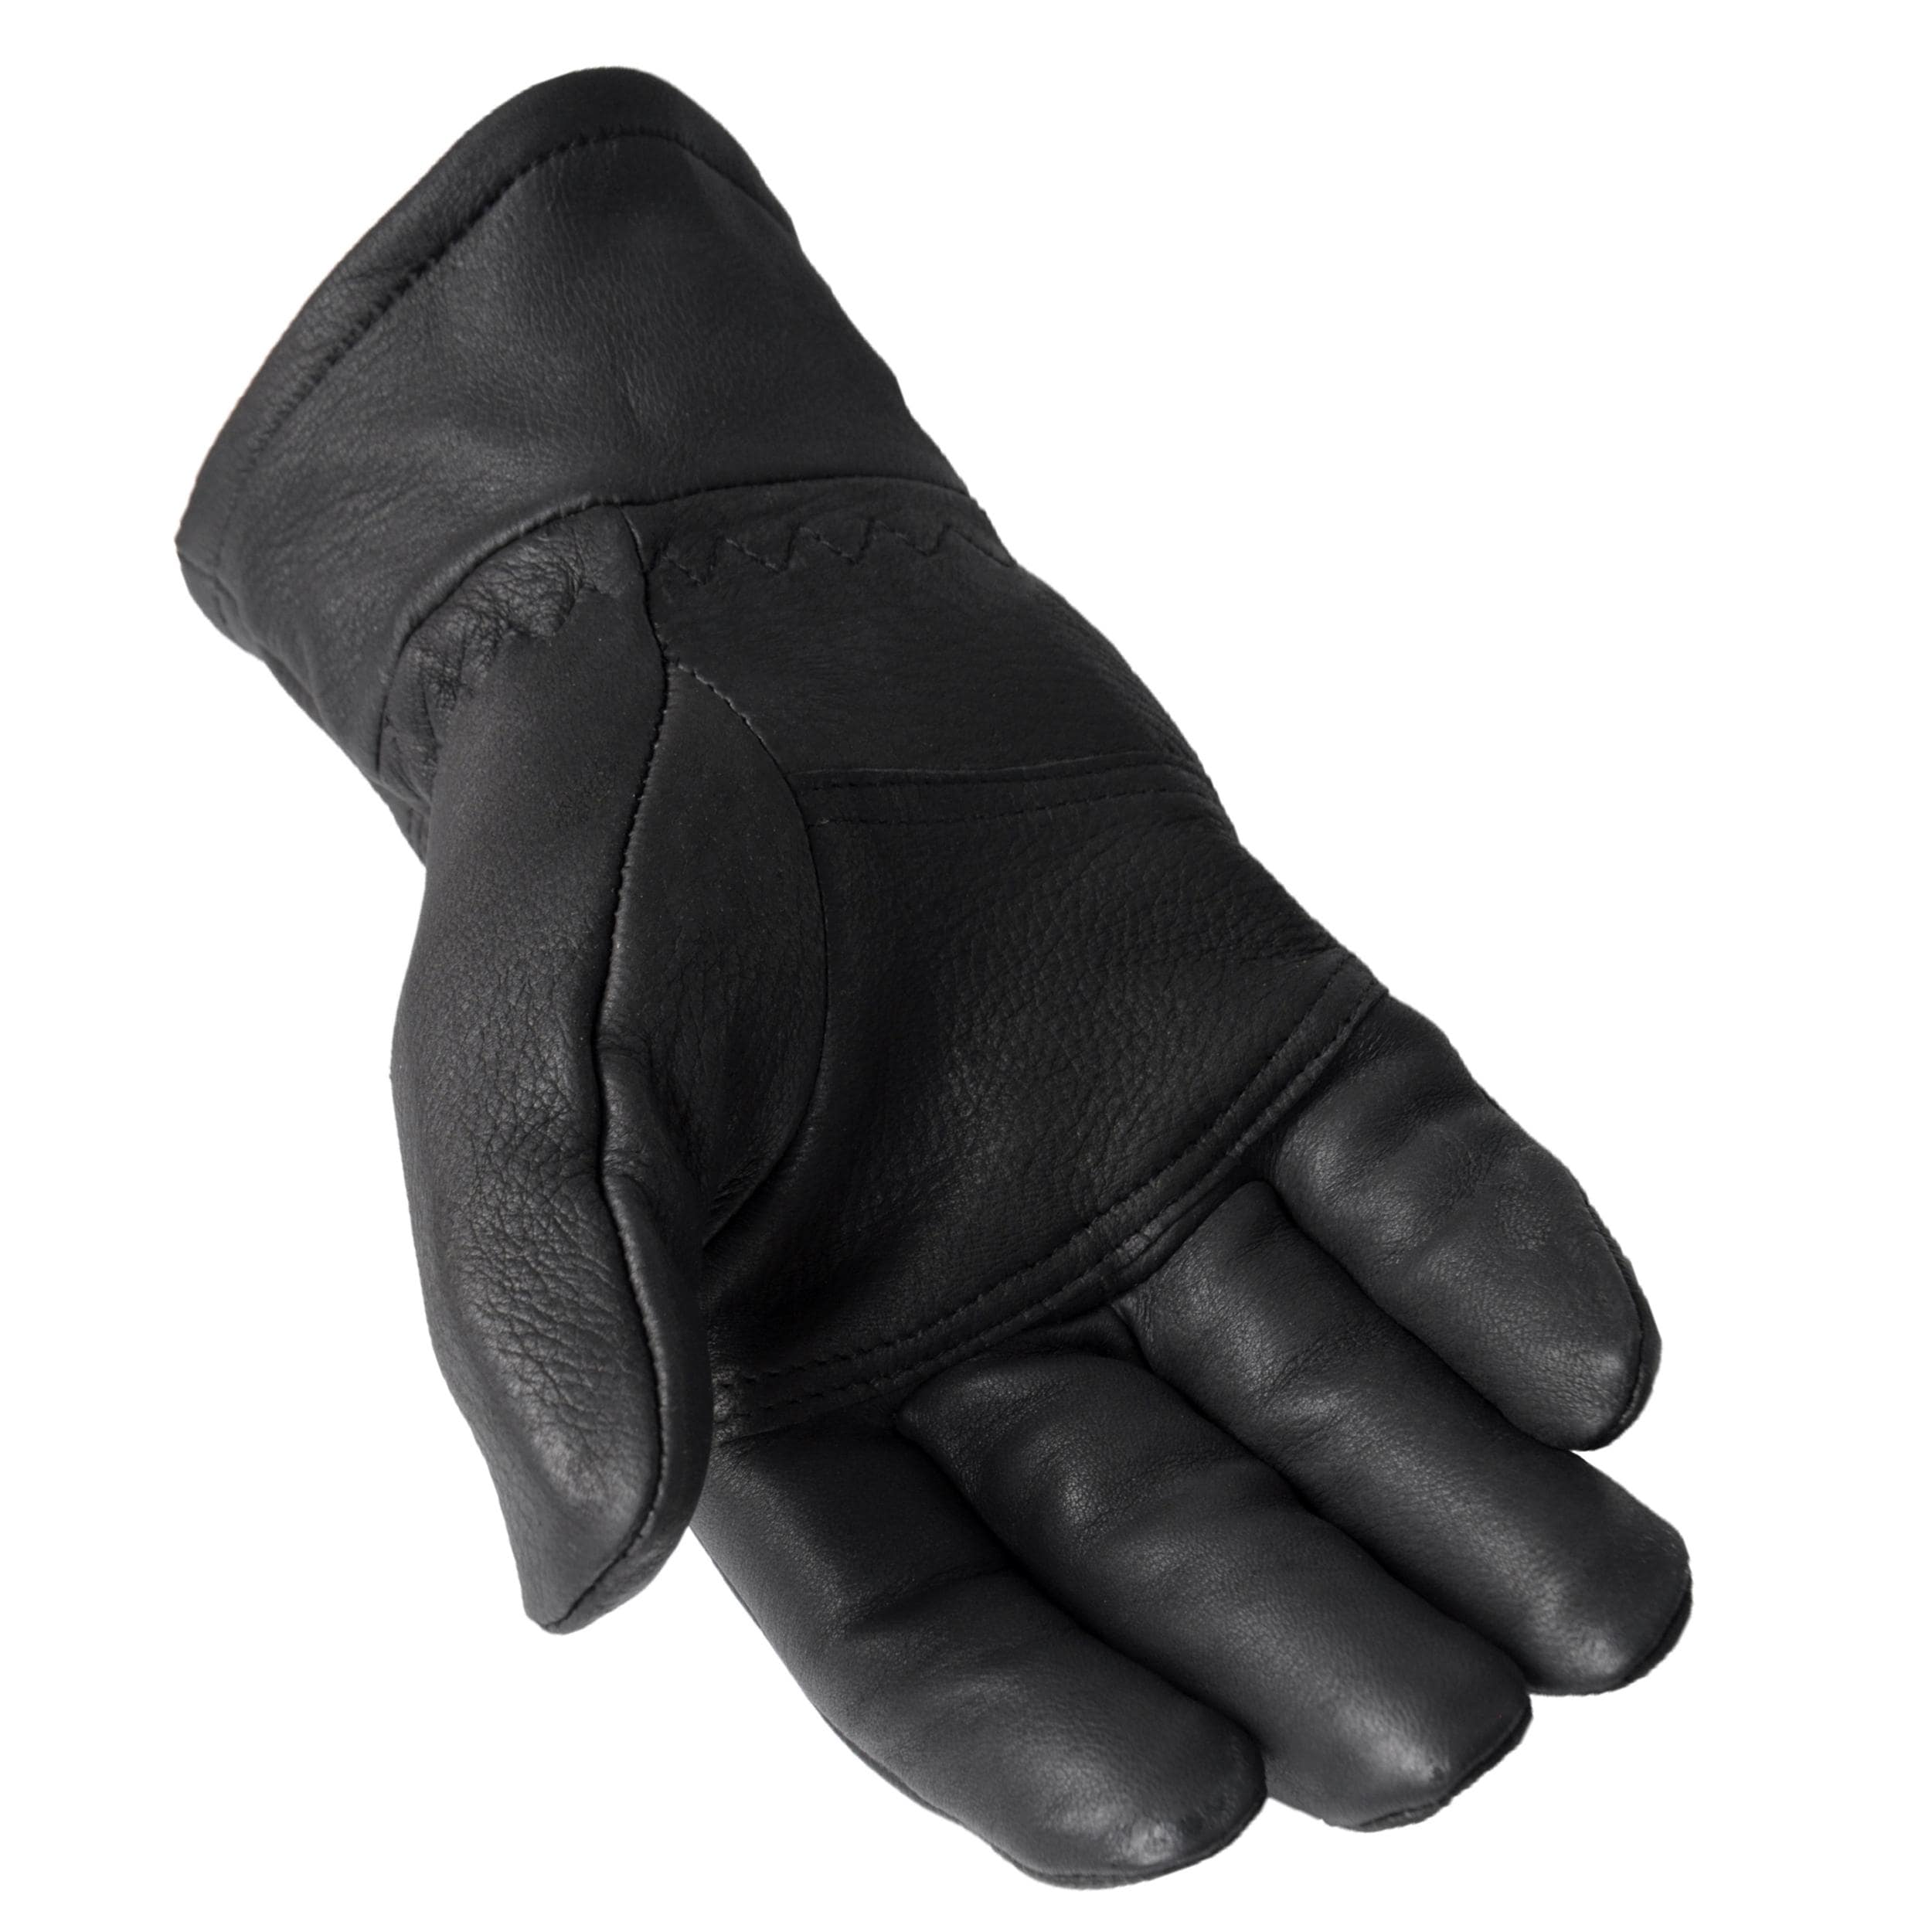 Mens deerskin gloves -  Daxx Men S Lined Top Grain Deerskin Leather Gloves